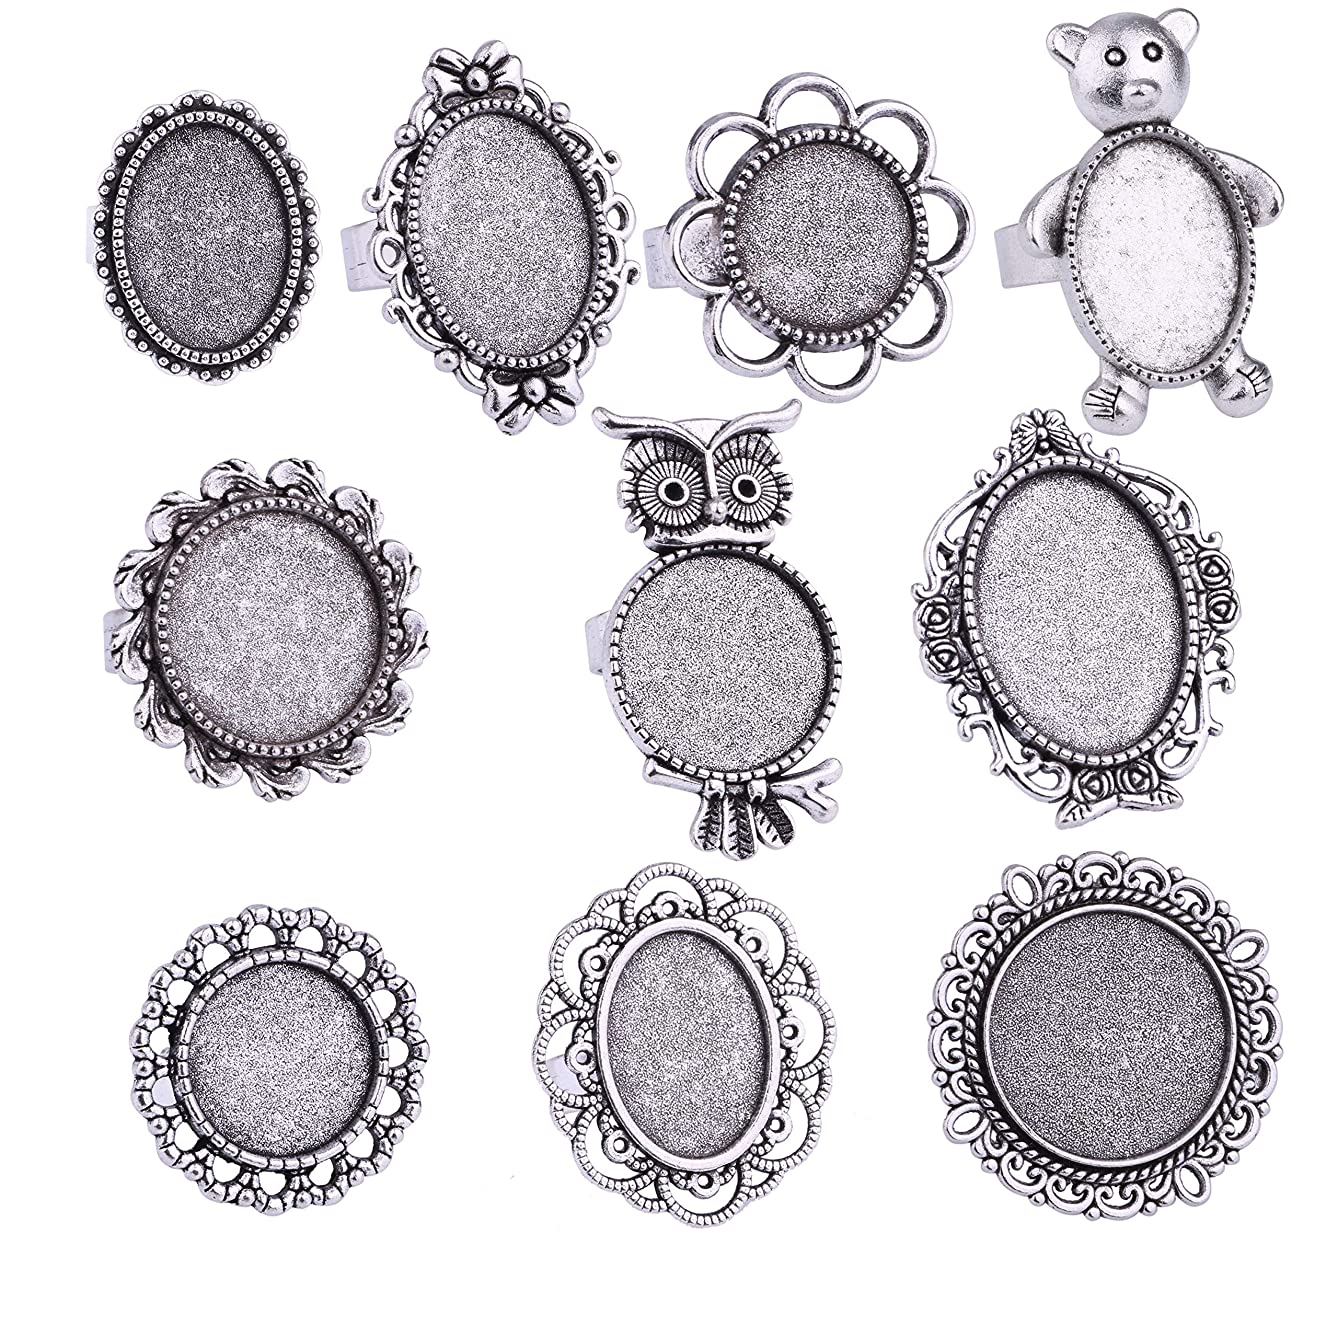 20pcs Antique Silver Round Oval Cabochon Opening Adjustable Rings Settings Finger Ring Components Iron Cabochon Bezel Settings for Ring Making (Antique Silver)